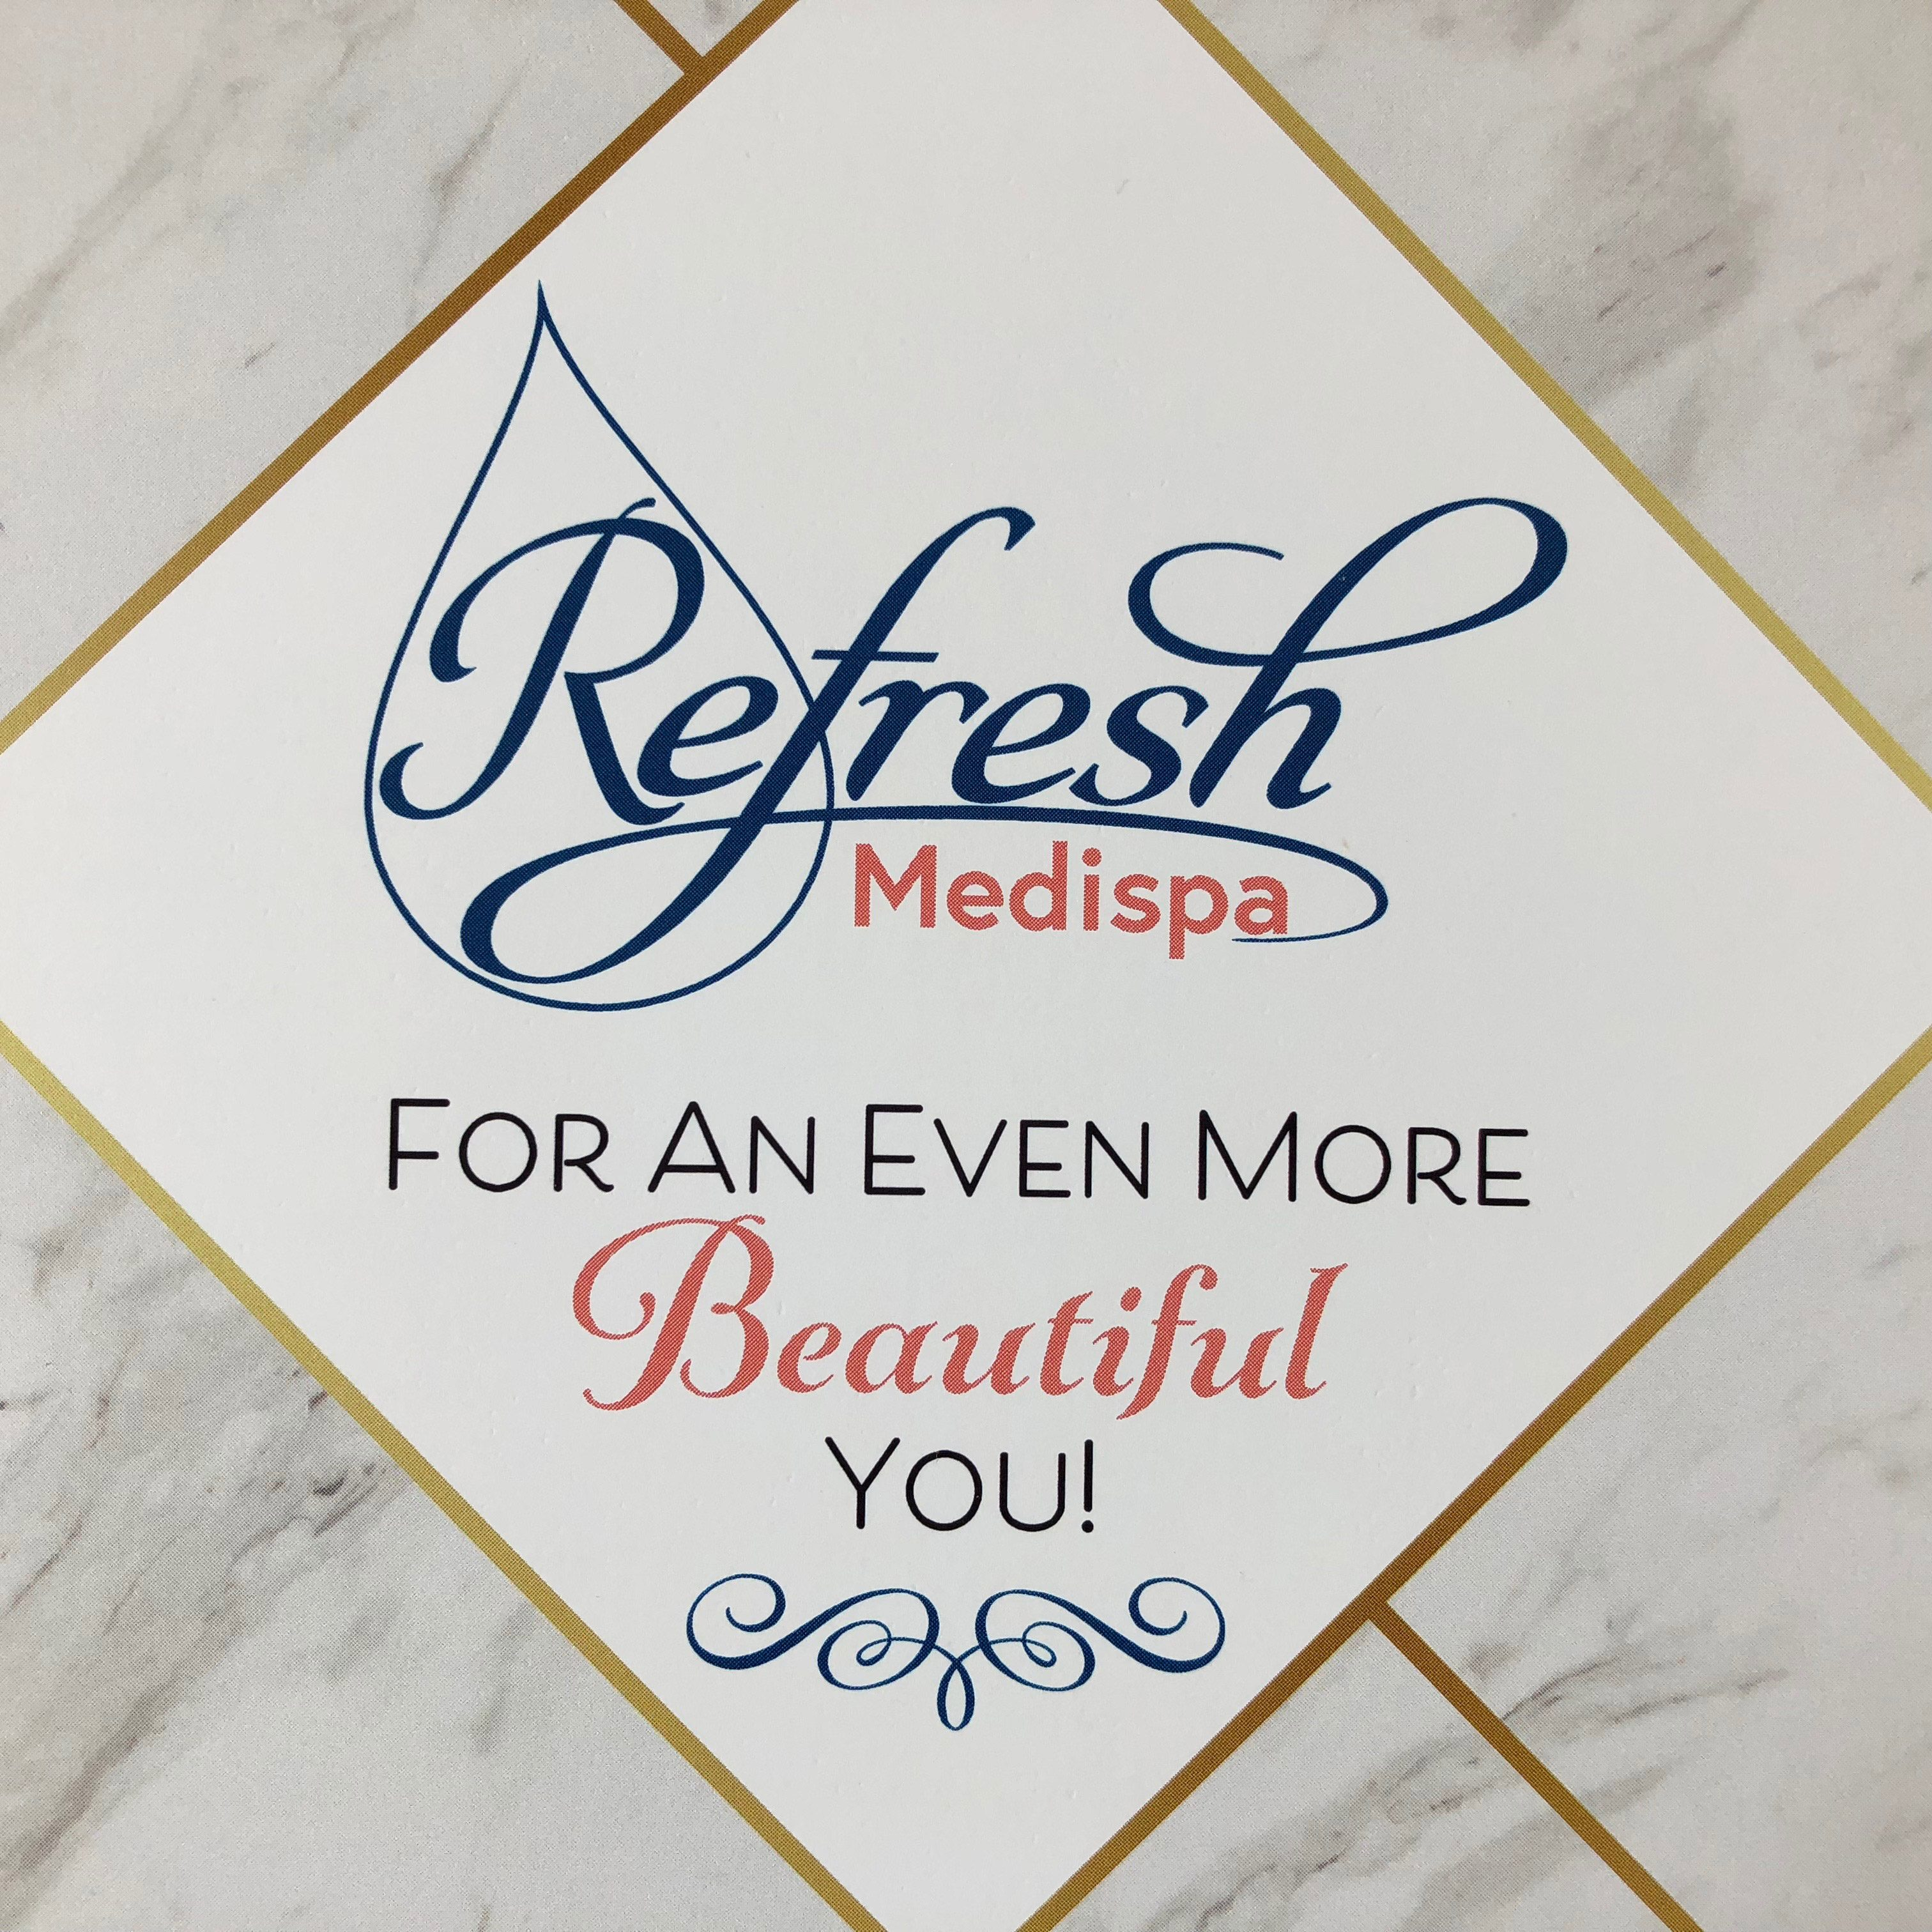 Refresh Medispa